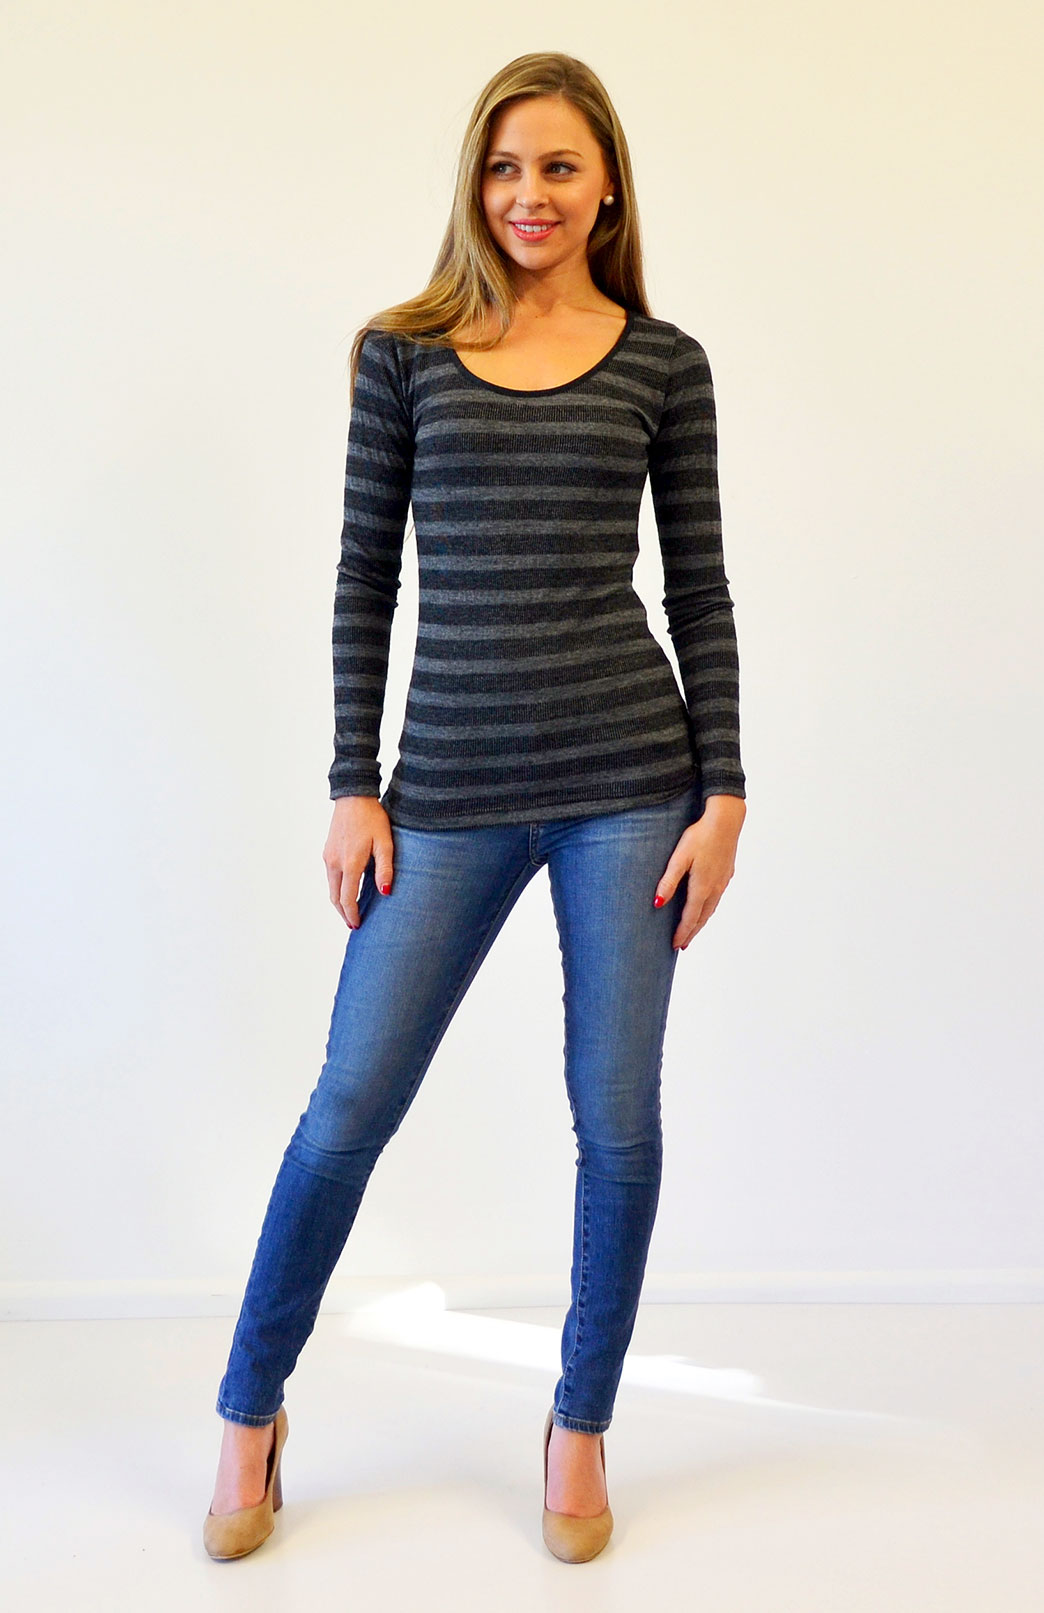 Wide Stripe Scoop Top - Smitten Merino Tasmania Australia